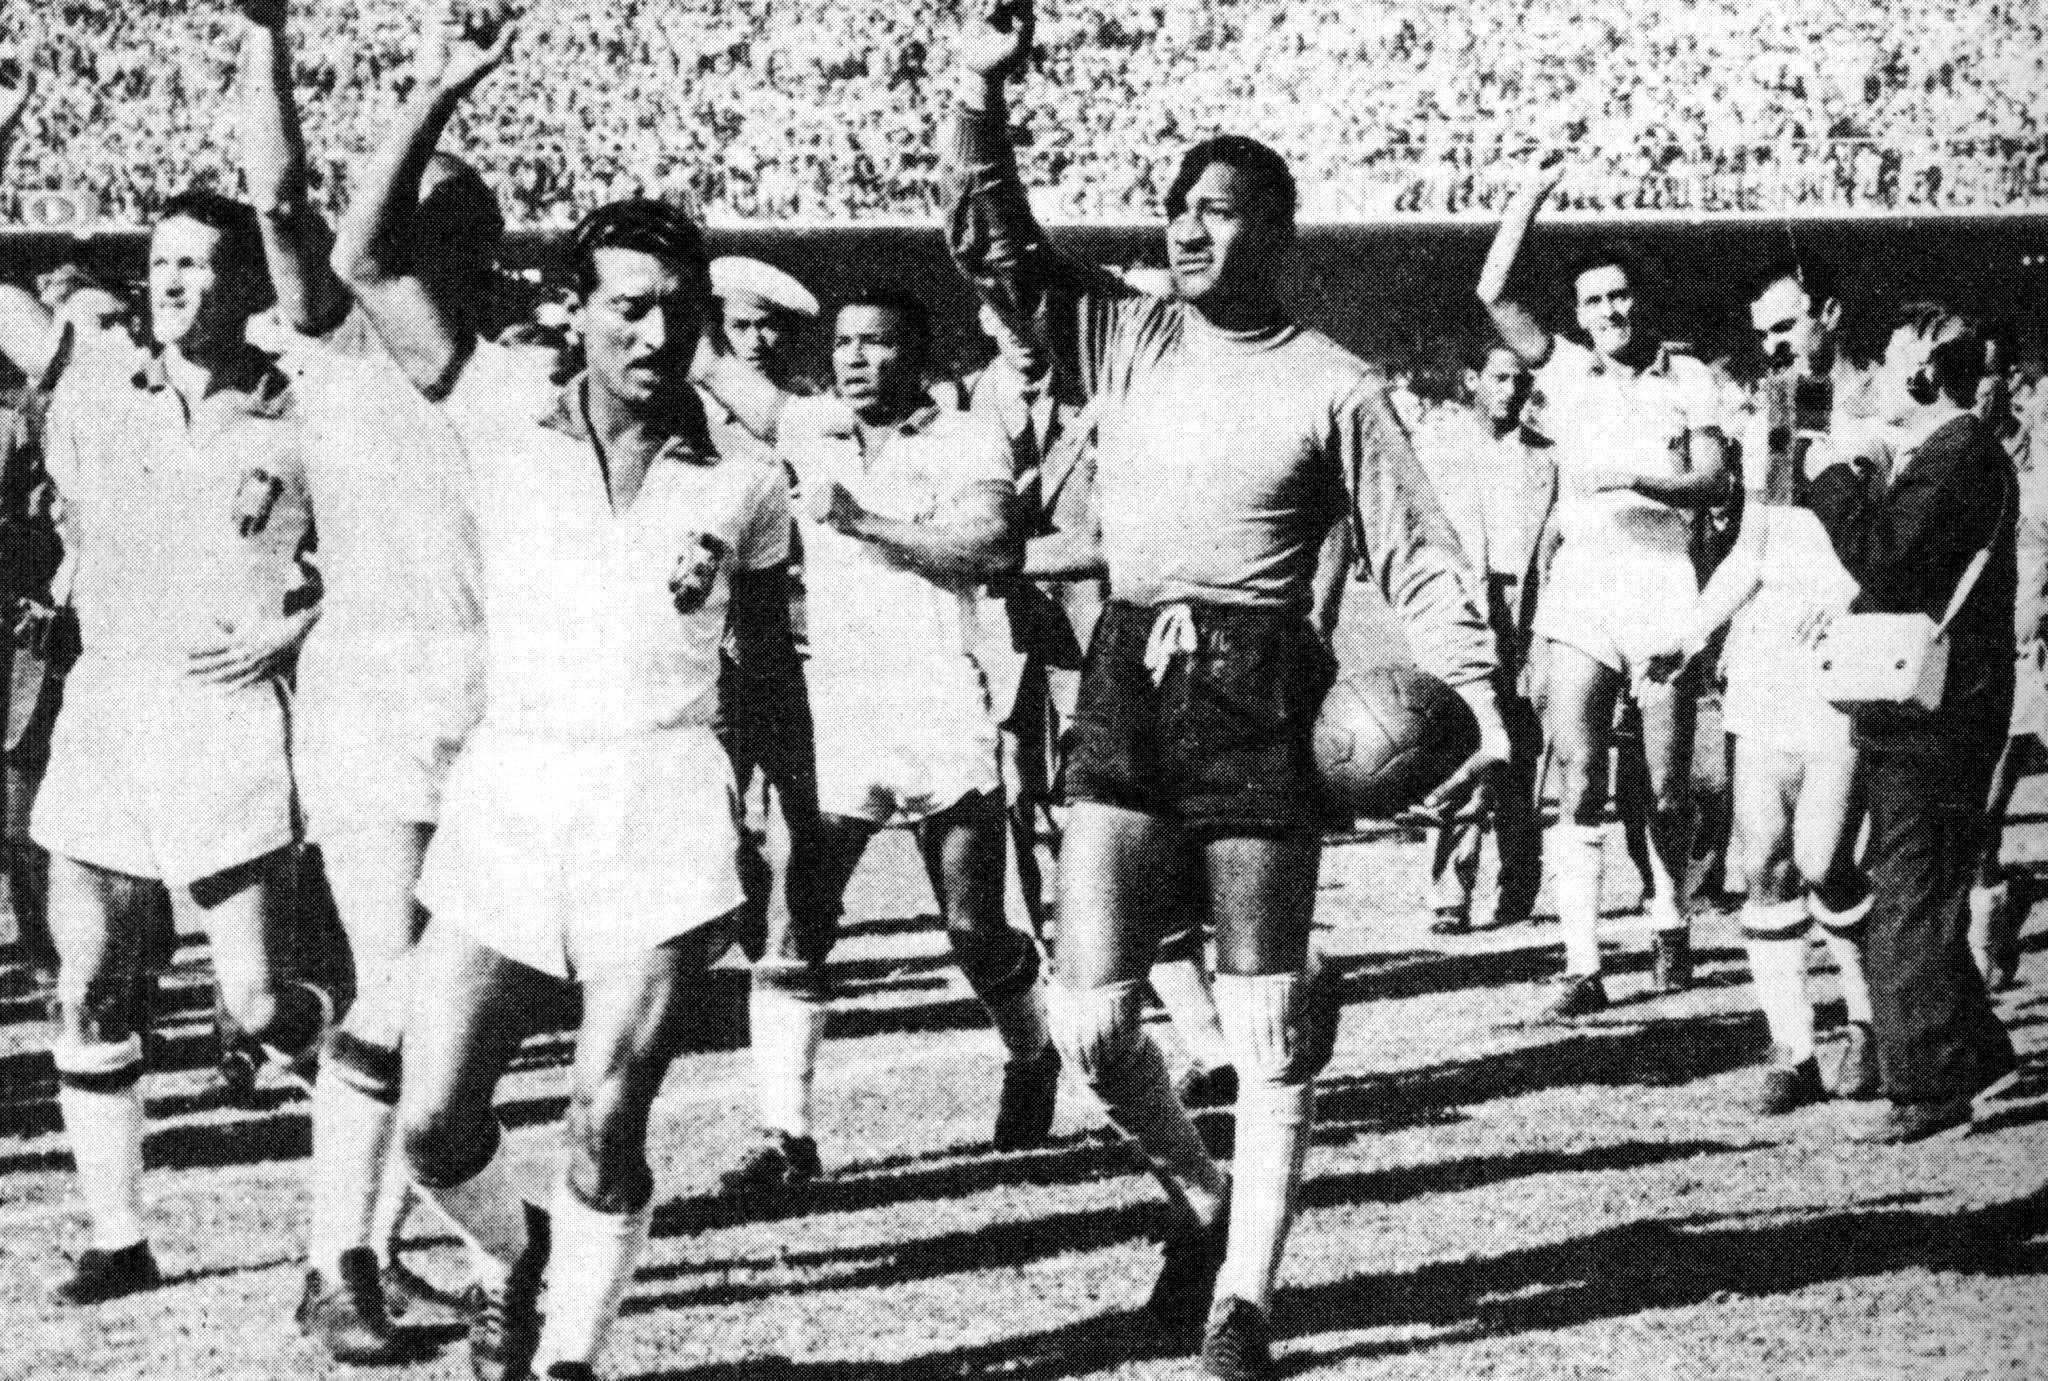 Brazil-Spain World Cup 1950